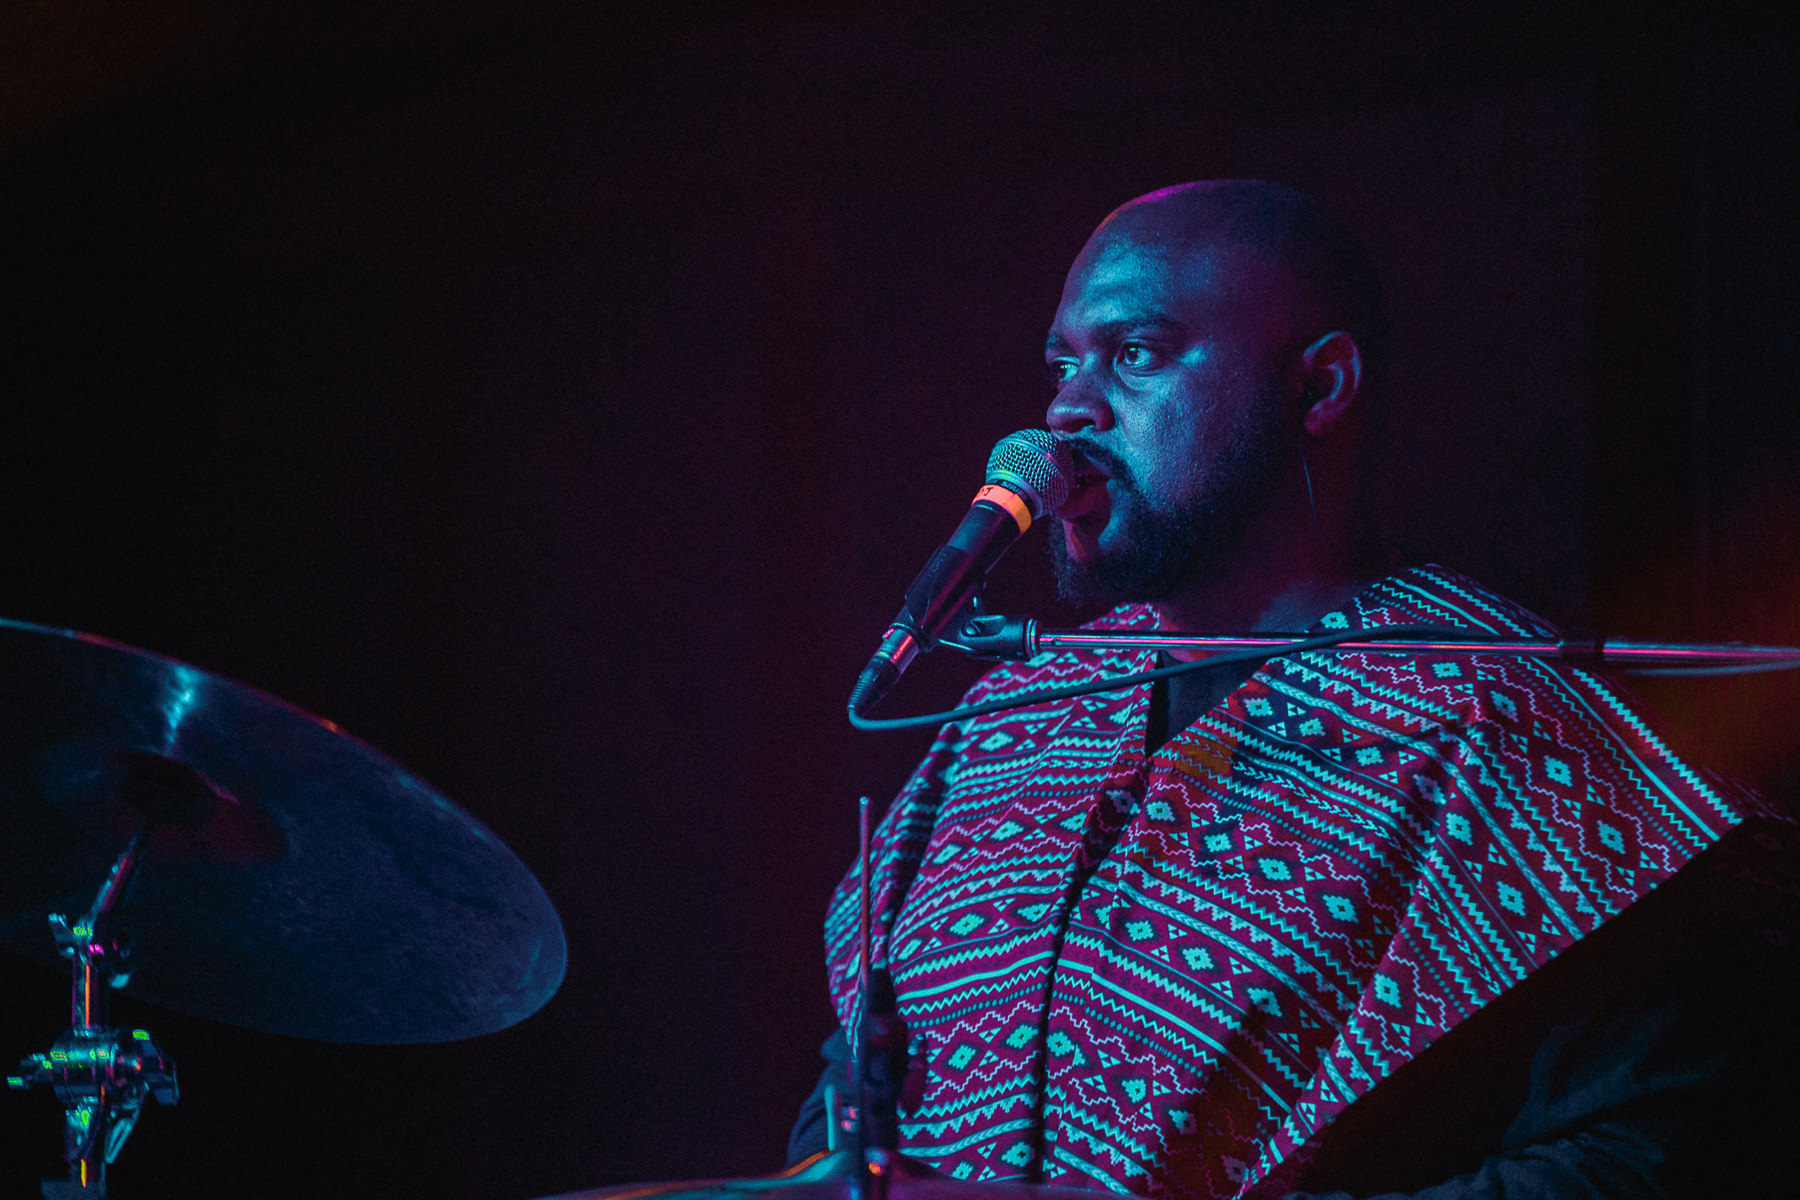 180326-kirby-gladstein-photograpy-khruangbin-concert-lodge-room-los-angeles-2657.jpg